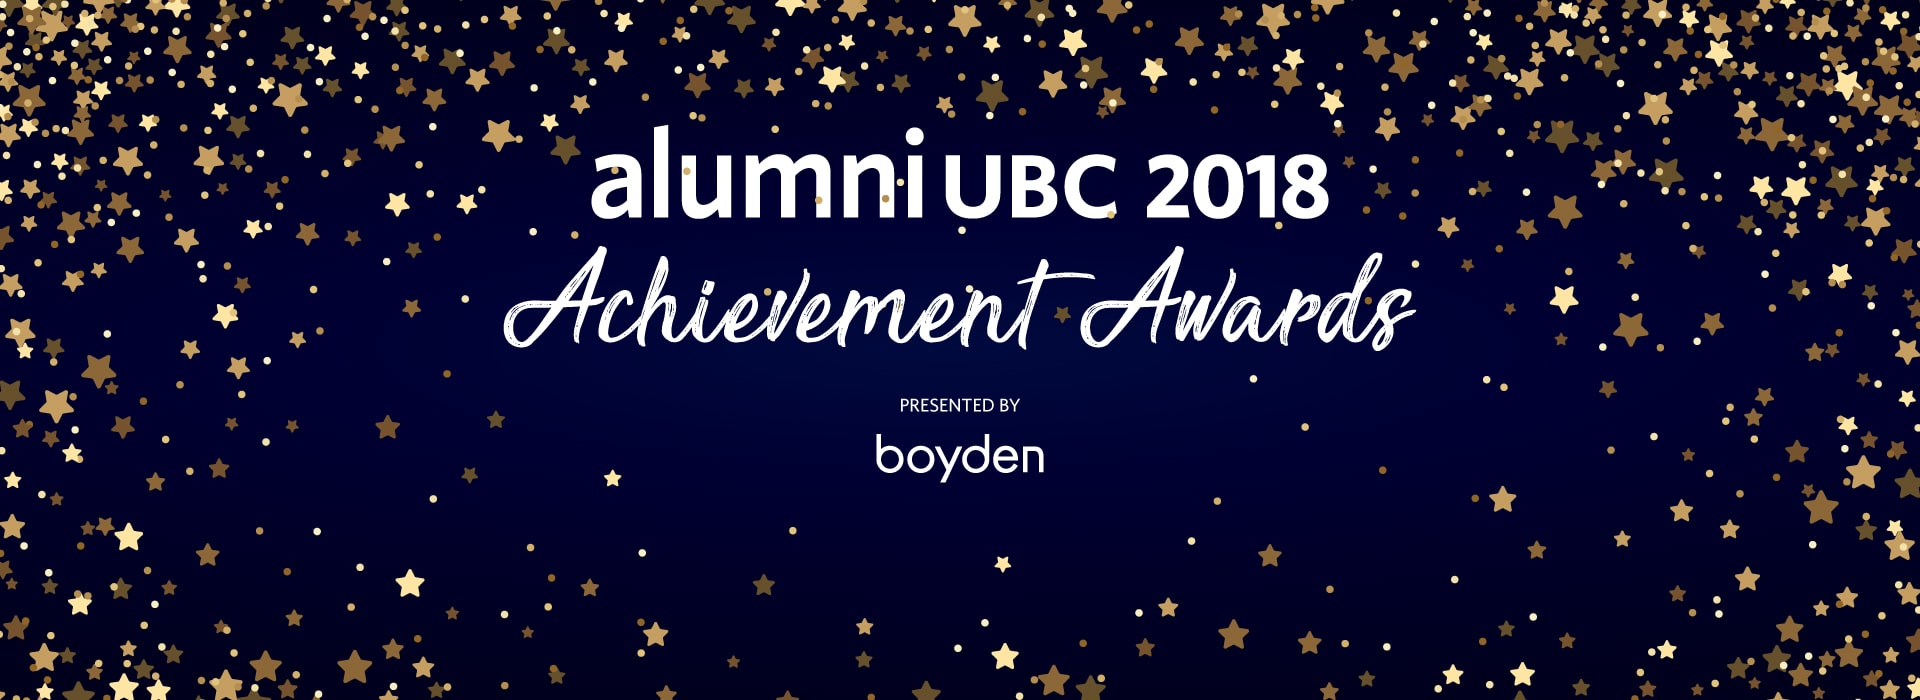 Announcing the alumni UBC 2018 Achievement Awards Recipients